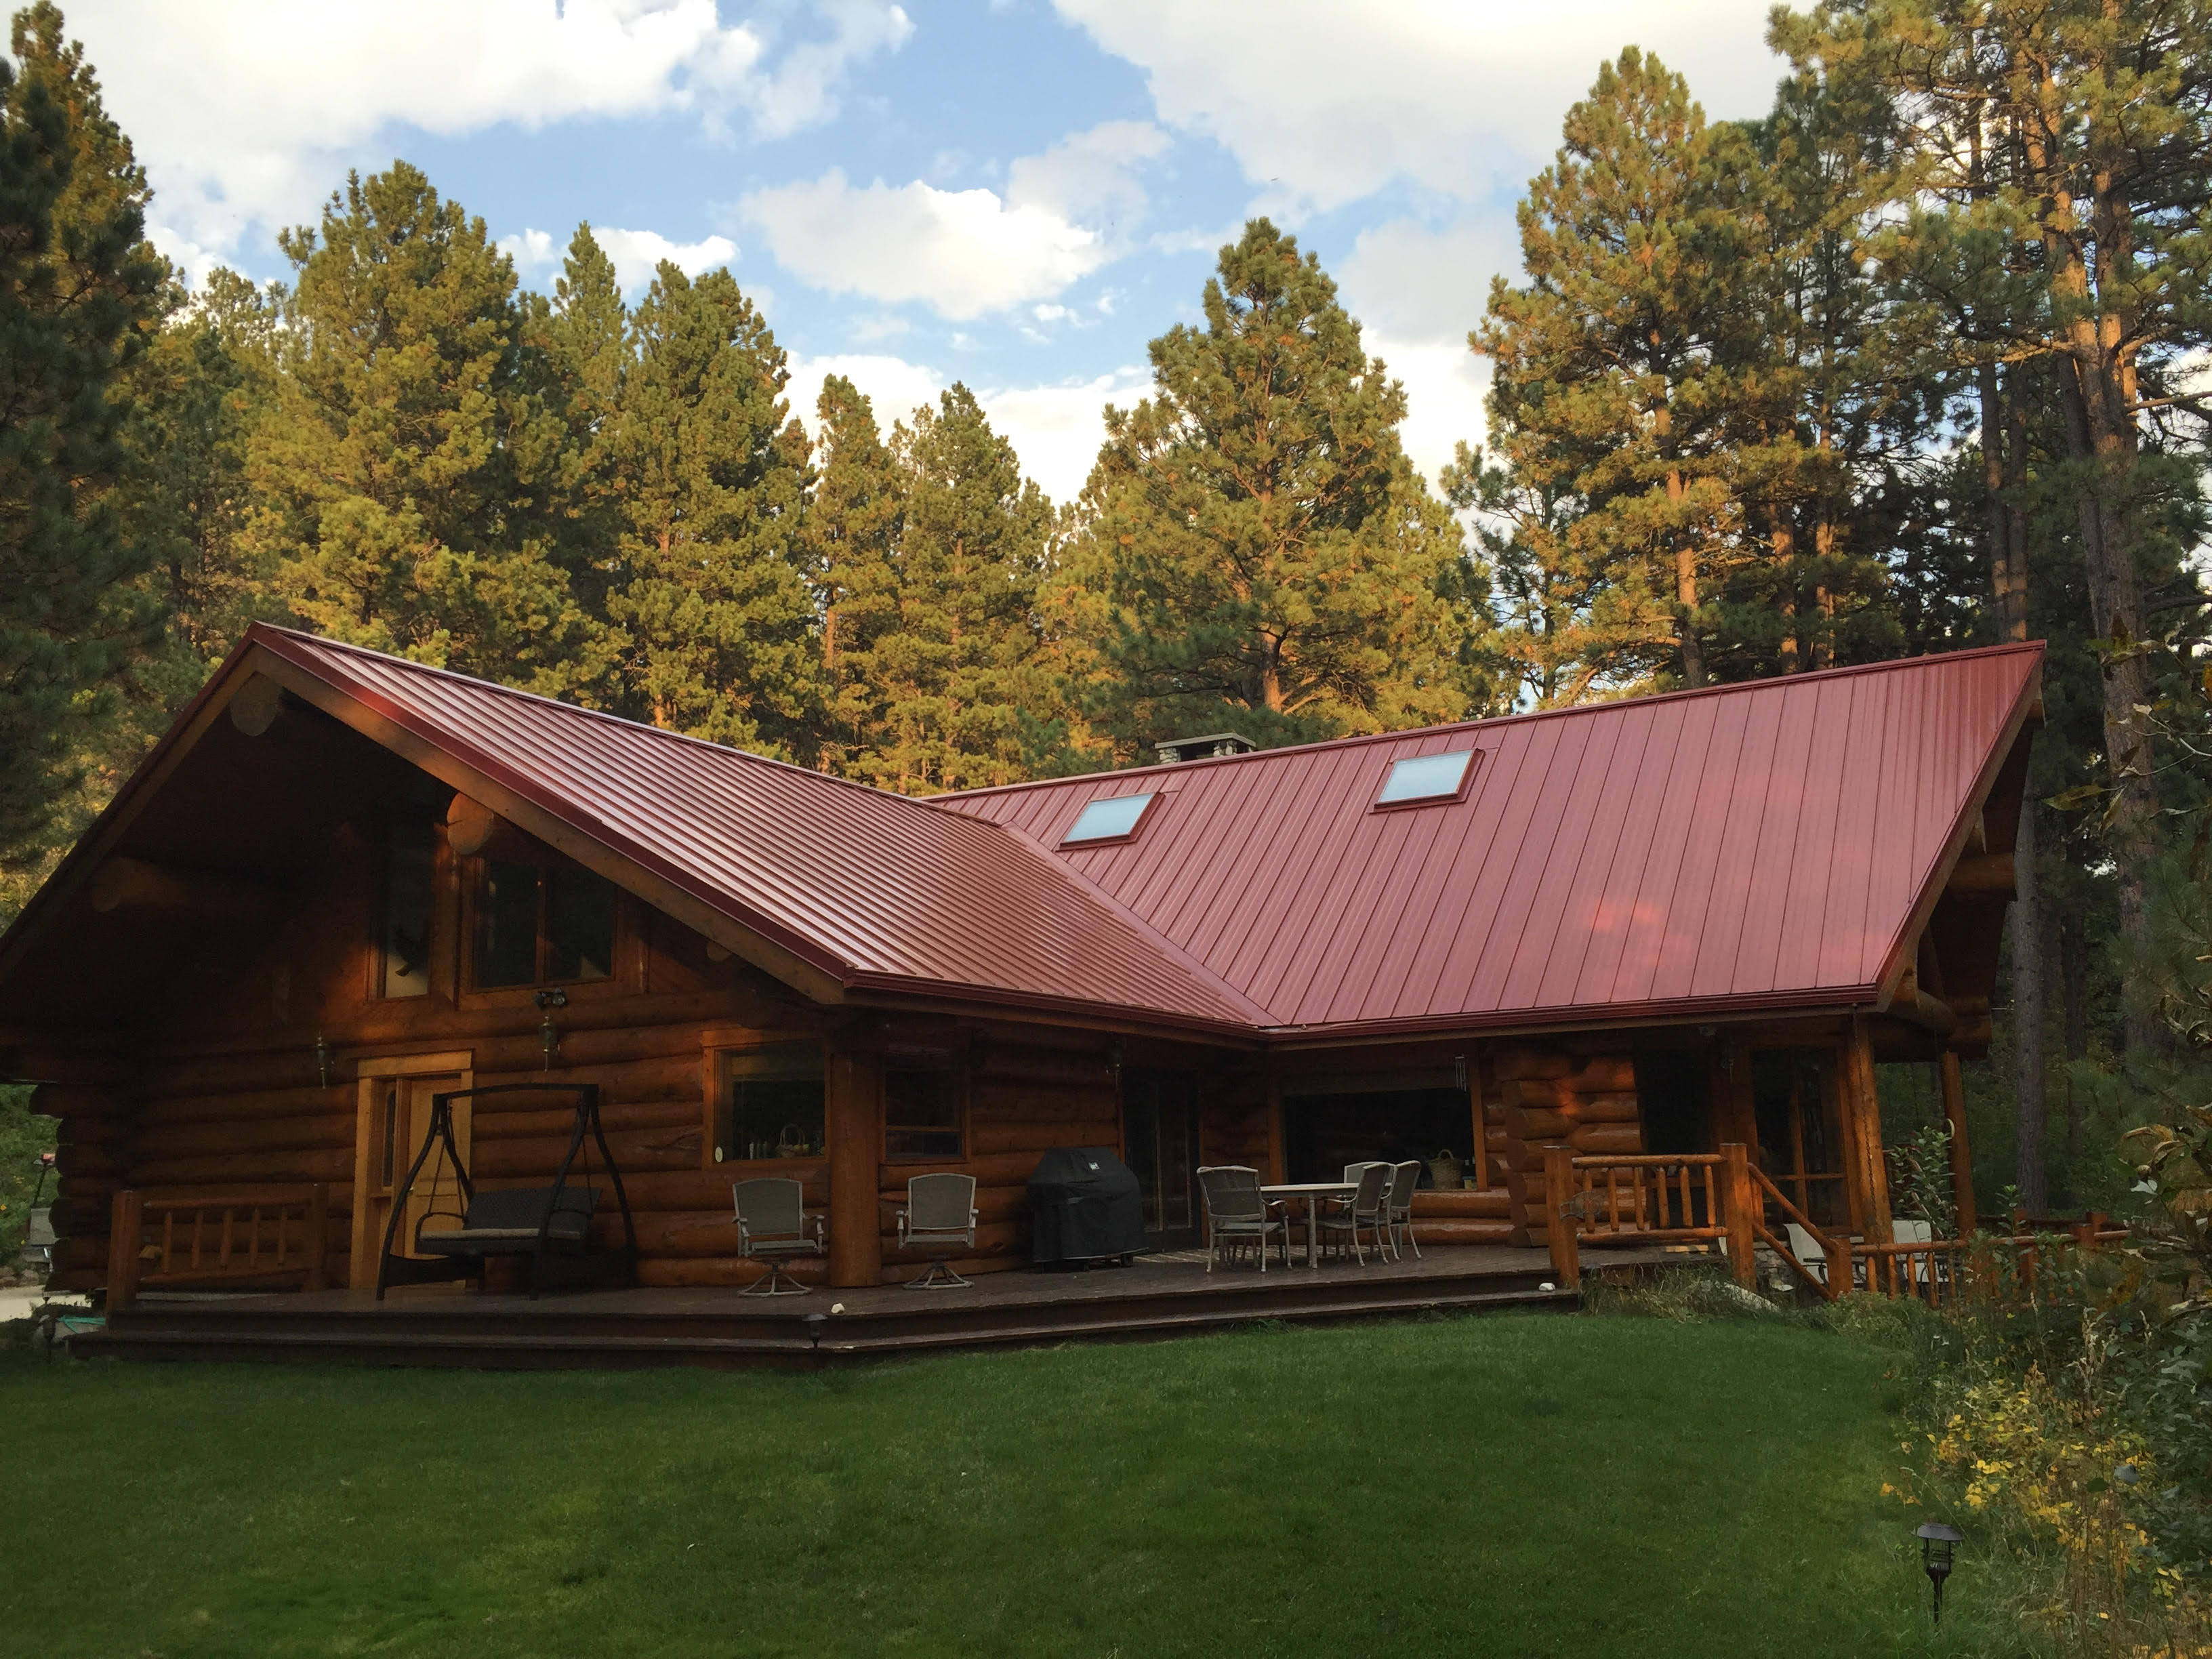 The best metal roofing company in Billings